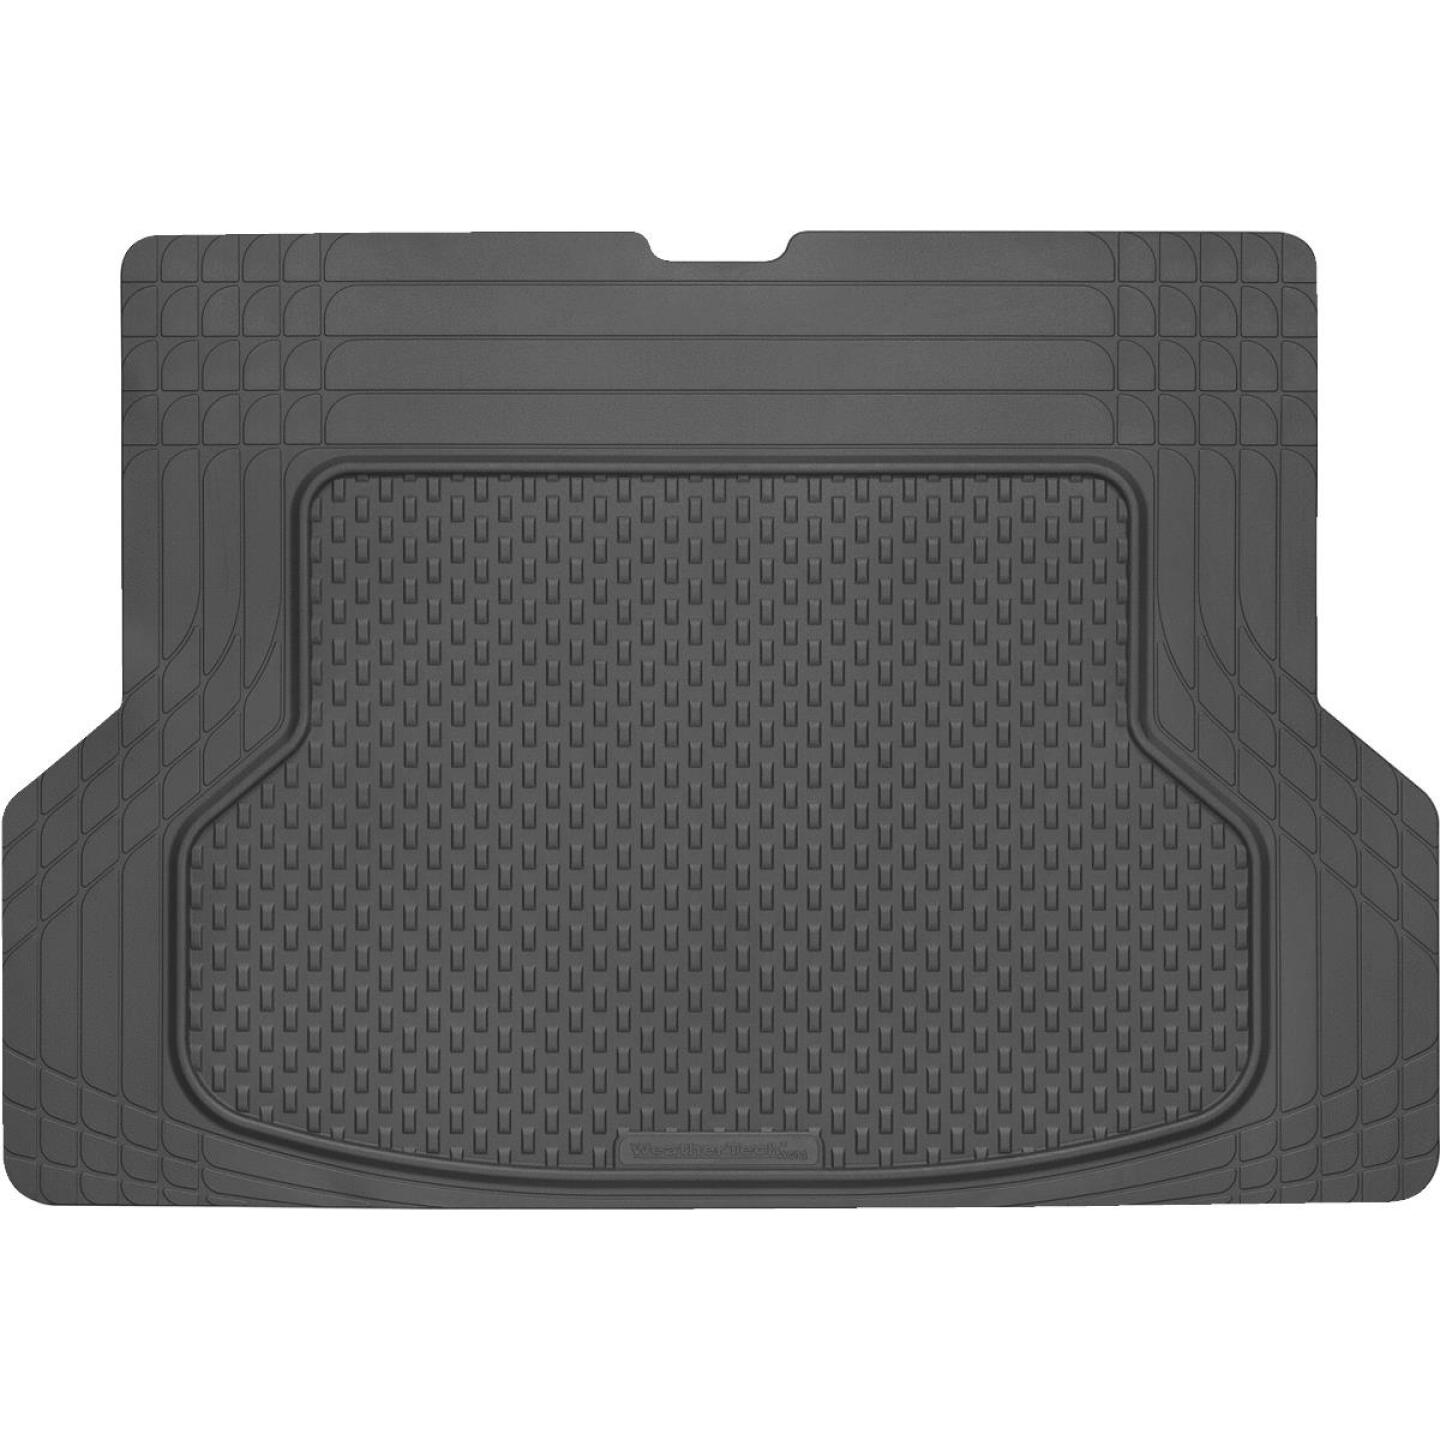 WeatherTech AVM Trim-to-Fit Black Rubber Universal Cargo/Floor Mat Image 1